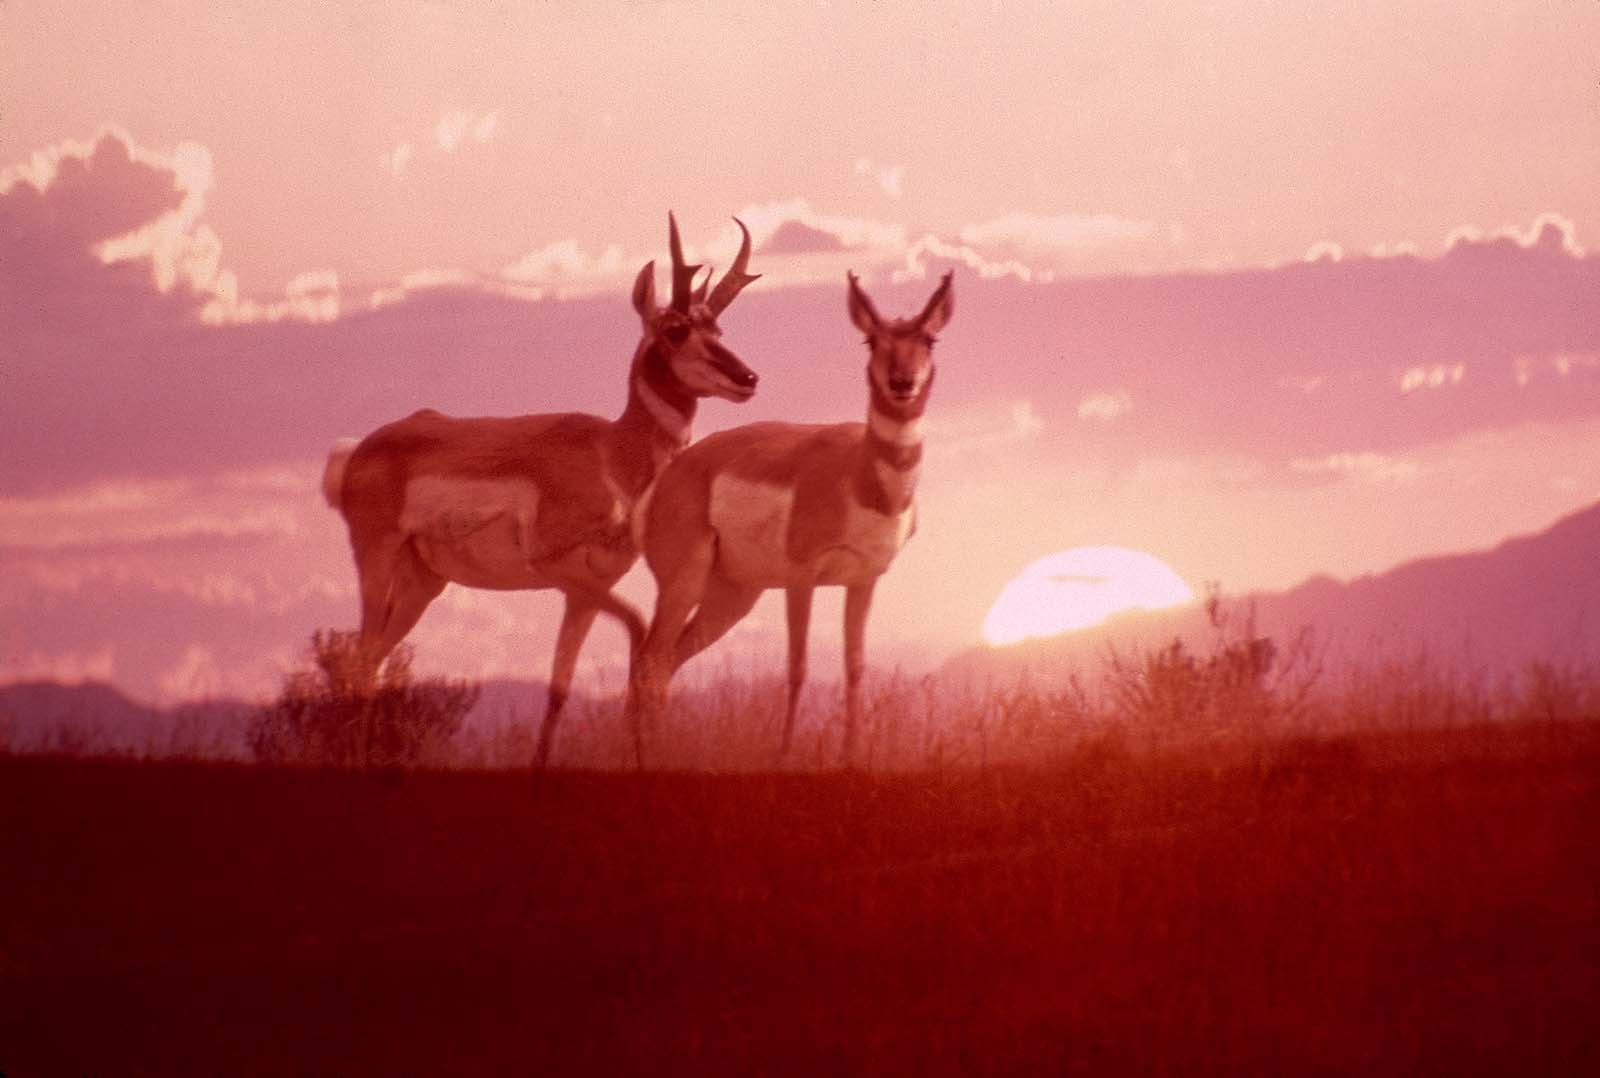 Pronghorn buck and doe at dusk. MS 301 Gabby Barrus Slide Collection, McCracken Research Library. SL.301.A.29